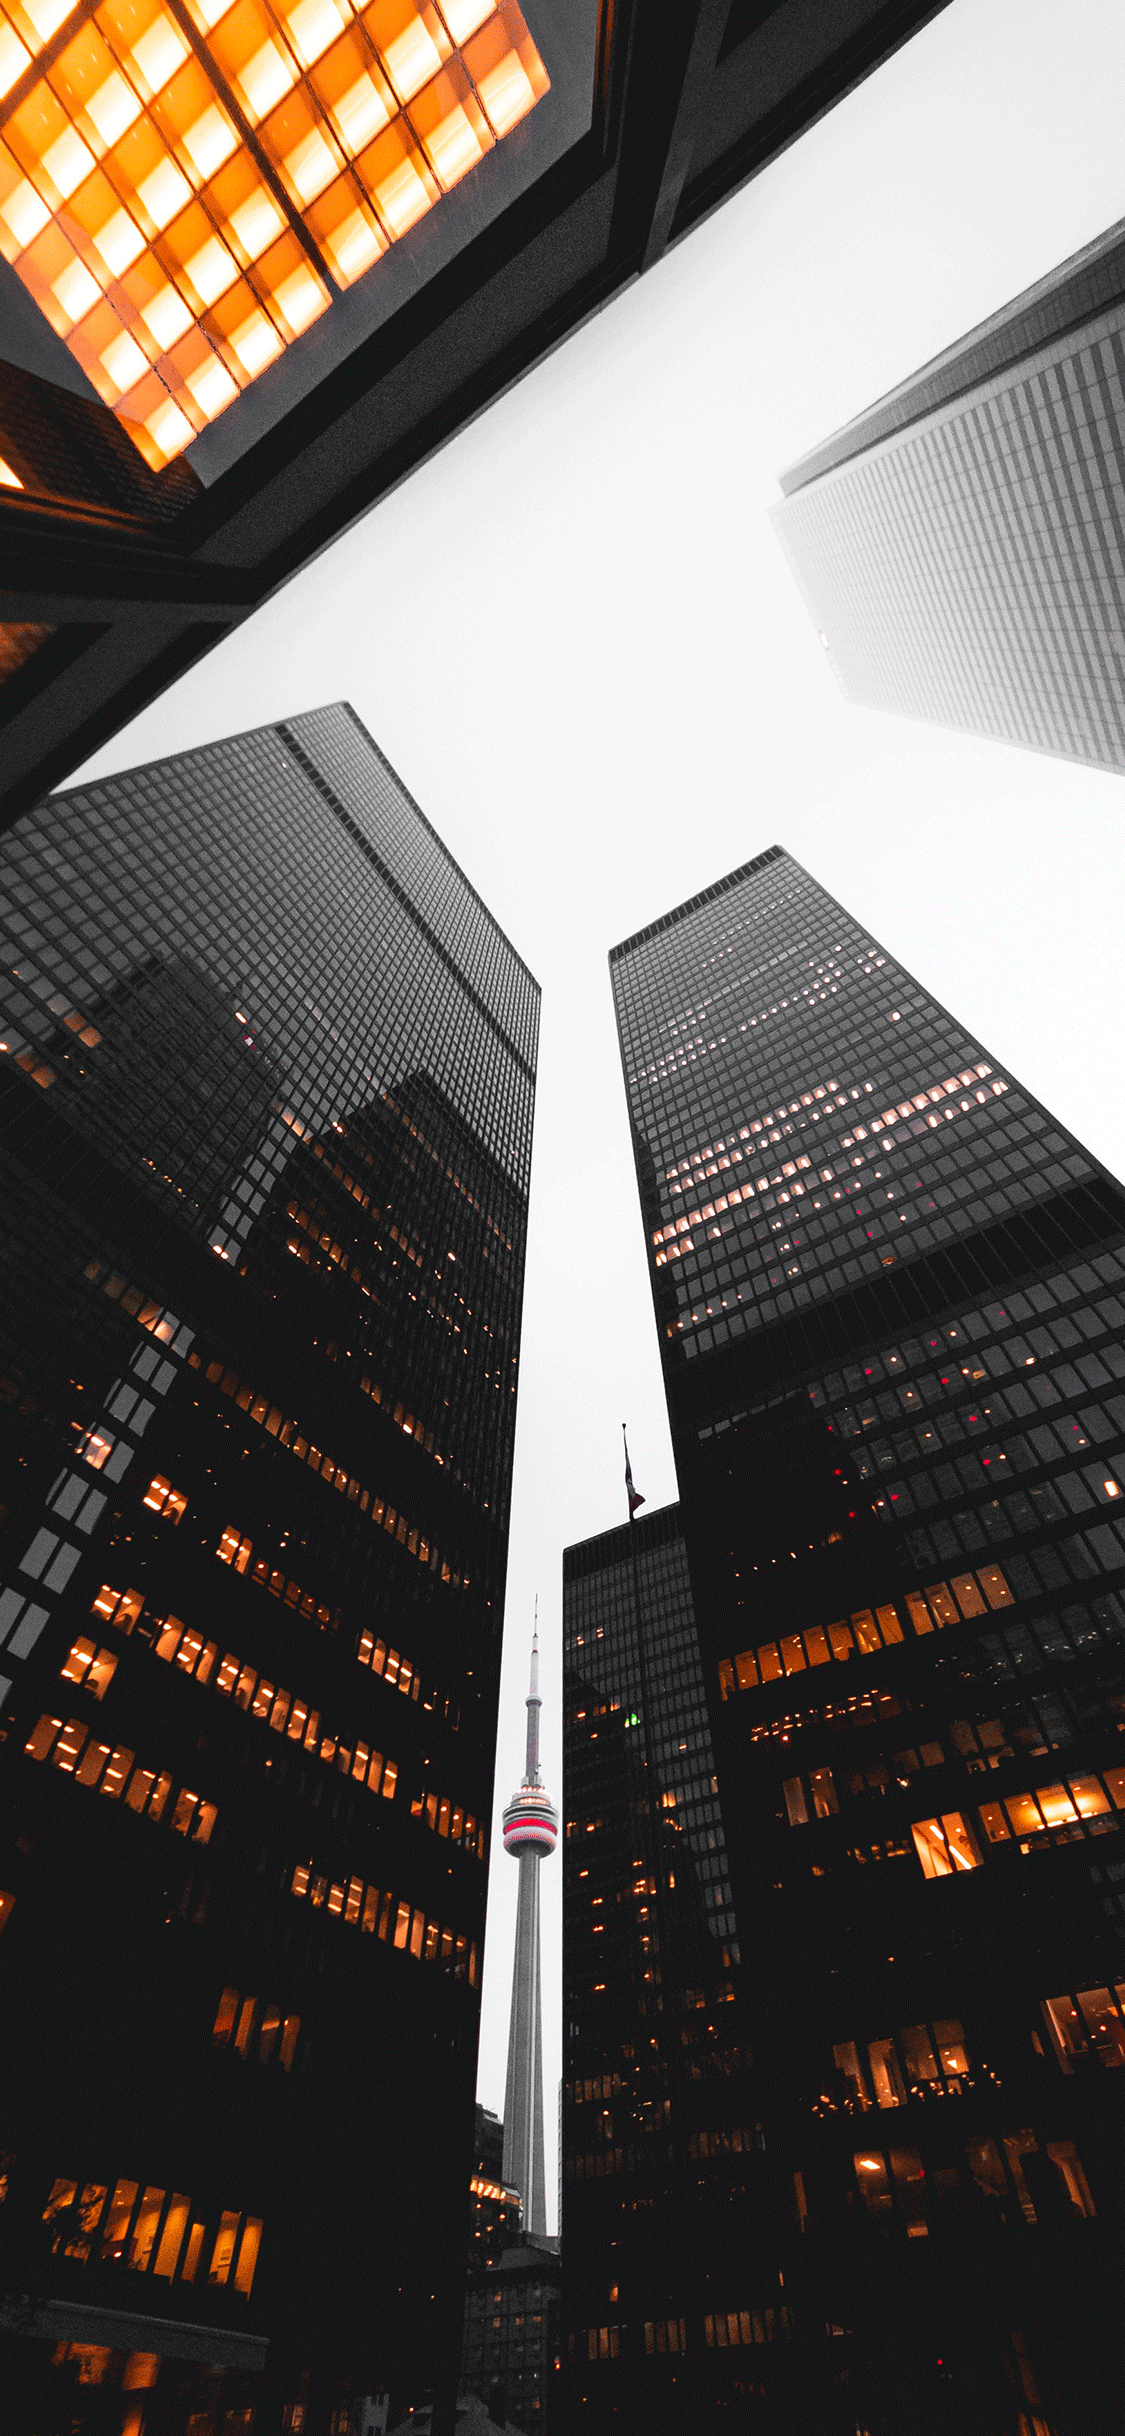 iPhone wallpaper building toronto Fonds d'écran iPhone du 24/08/2018